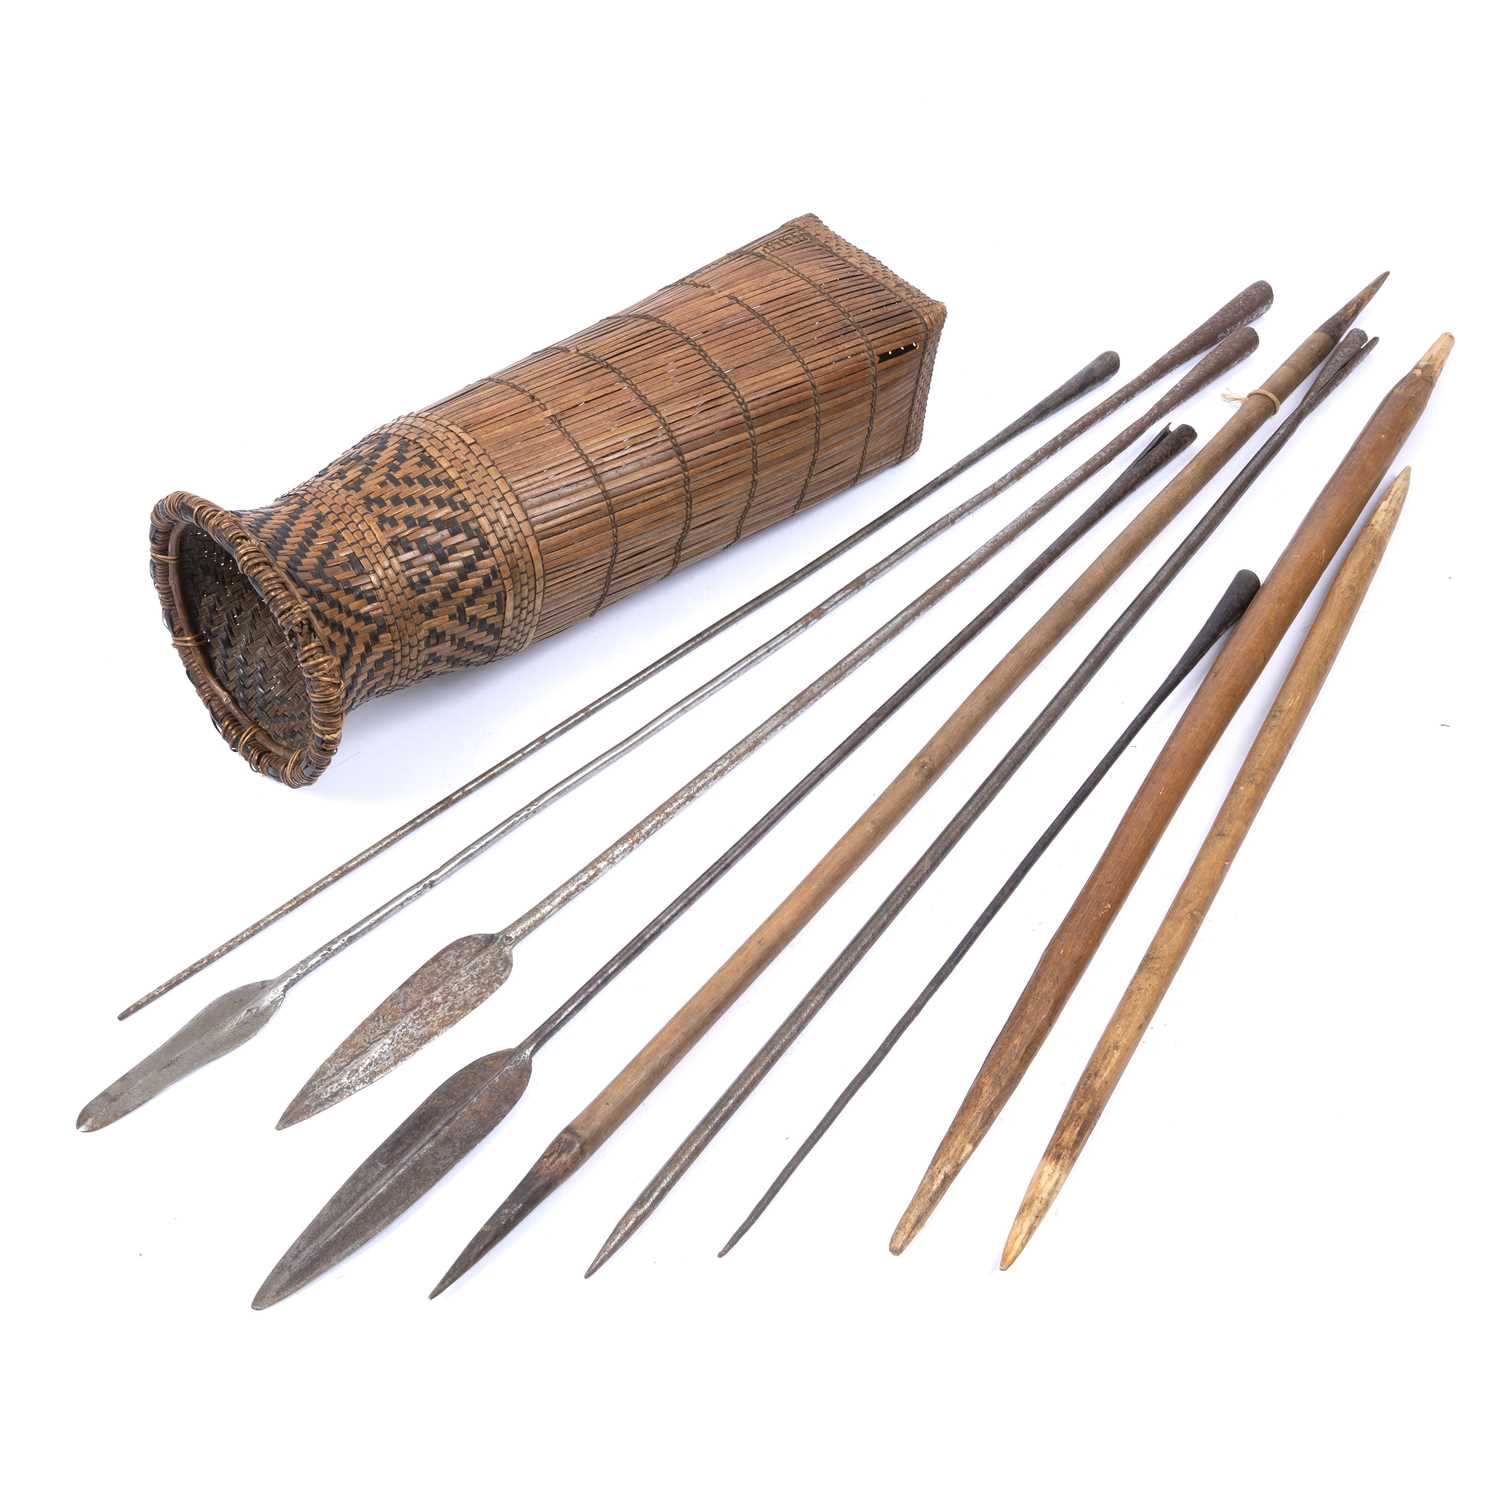 A set of three Masai spears, with iron blades together with a woven basket work Turkana container (